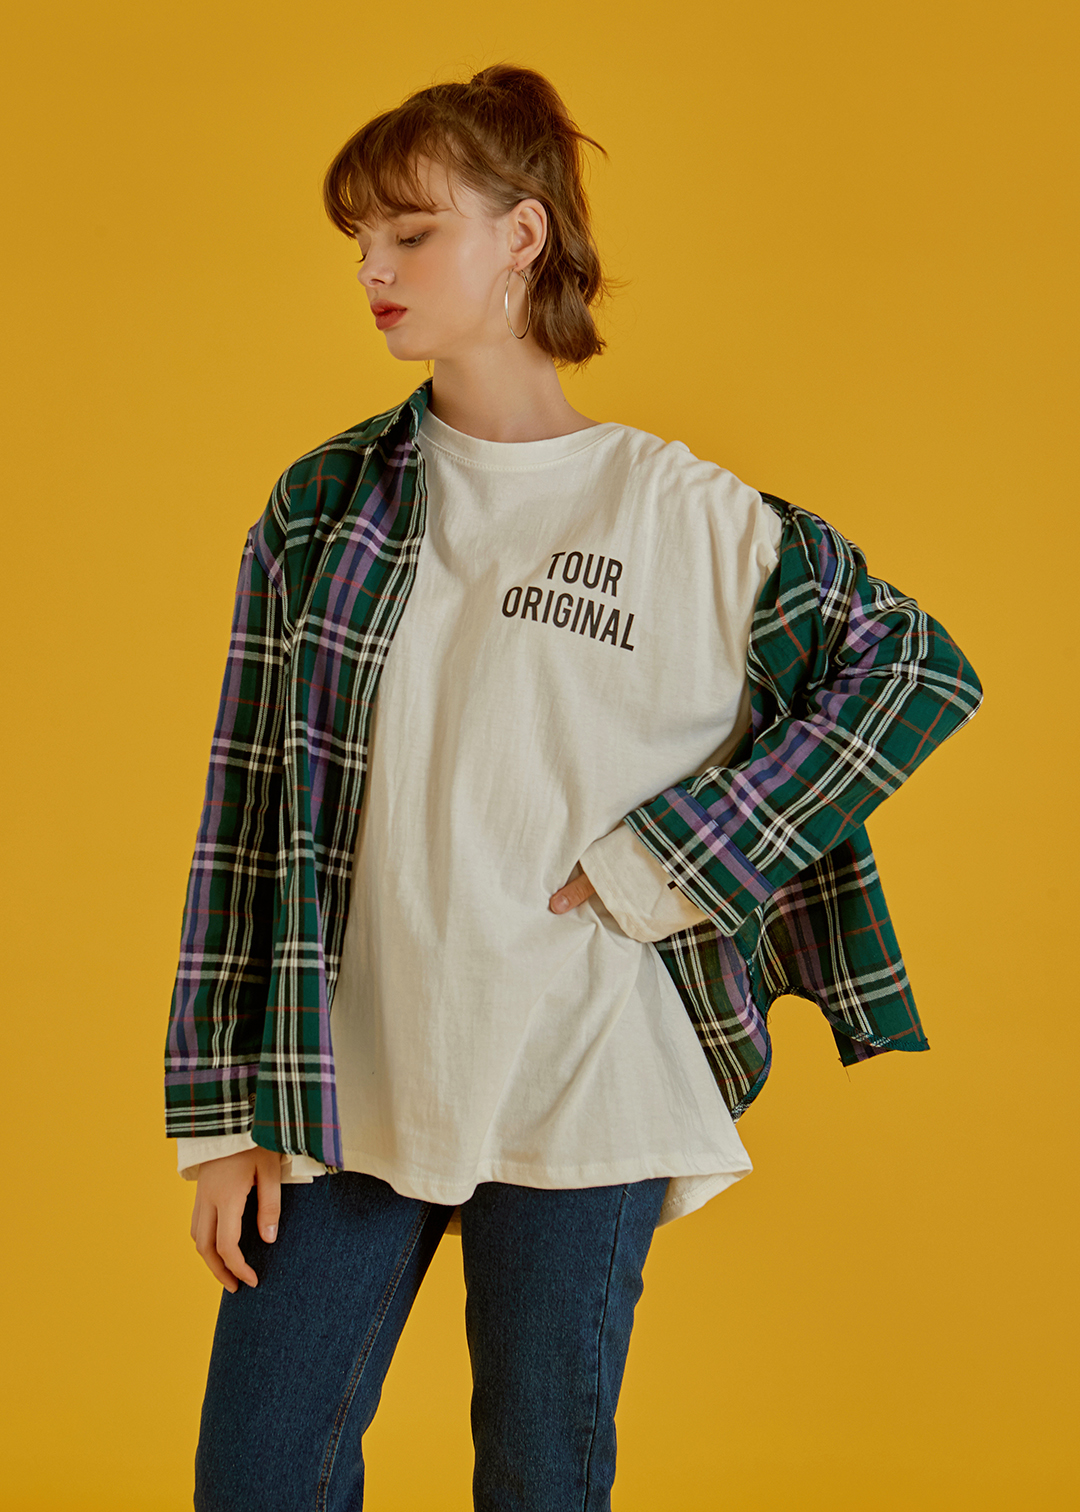 Loose Fit Lettering Print T-Shirt